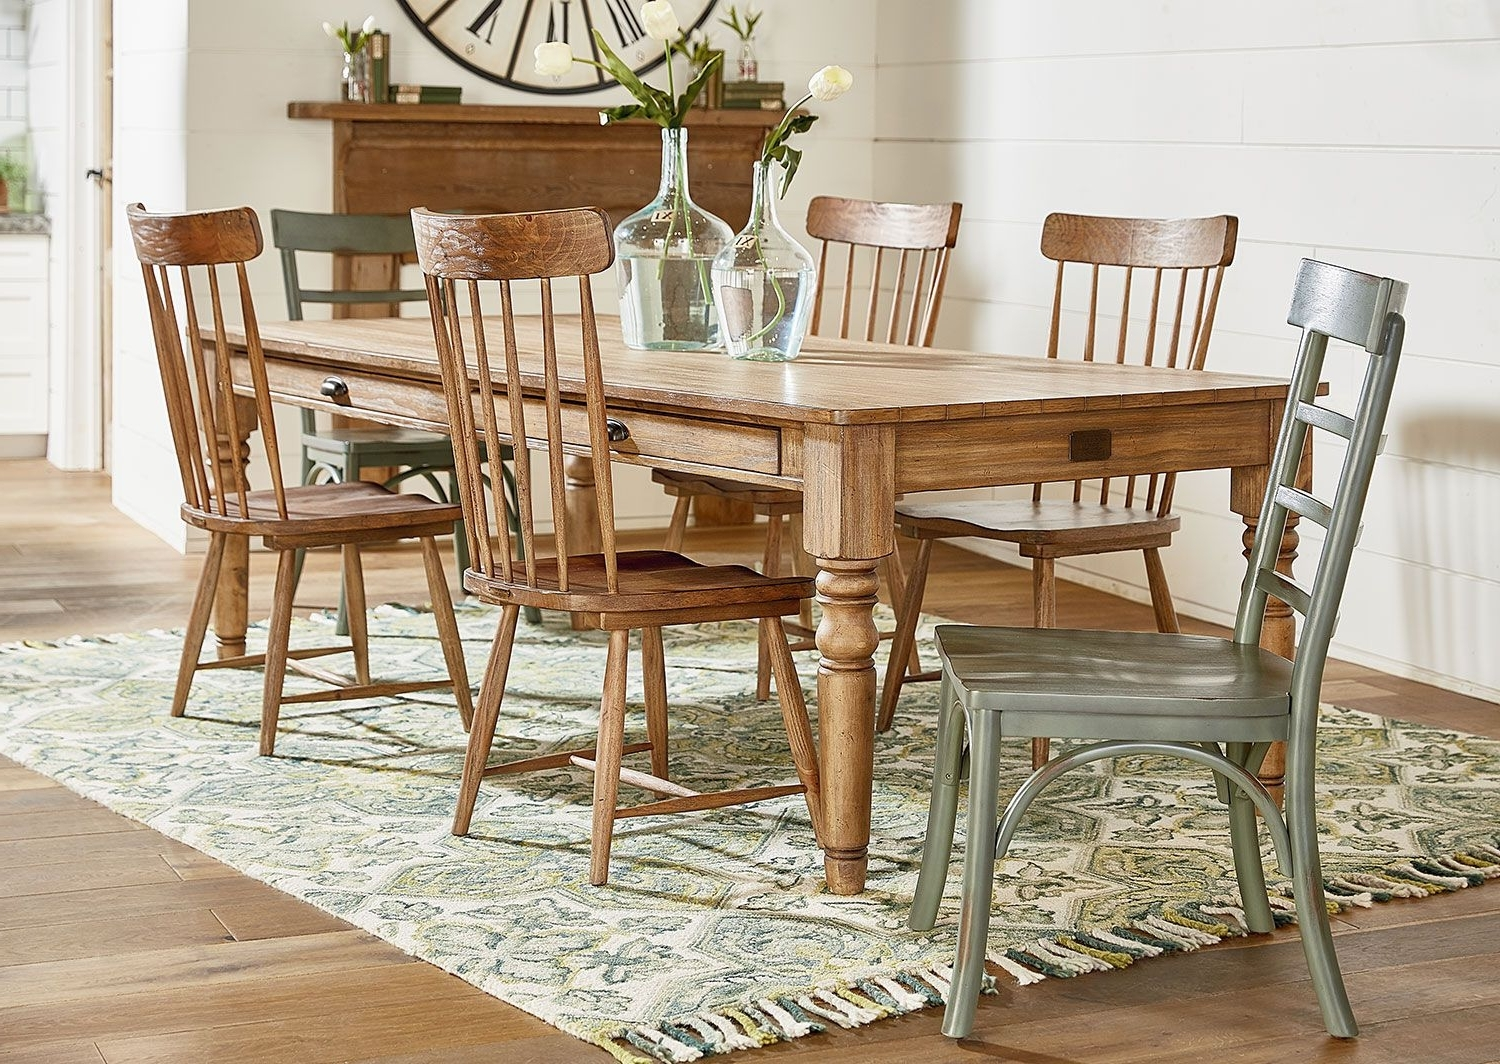 Dining Room Furniture – Farmhouse Spindle Back Side Chair – Bench Regarding Current Magnolia Home Spindle Back Side Chairs (View 9 of 20)